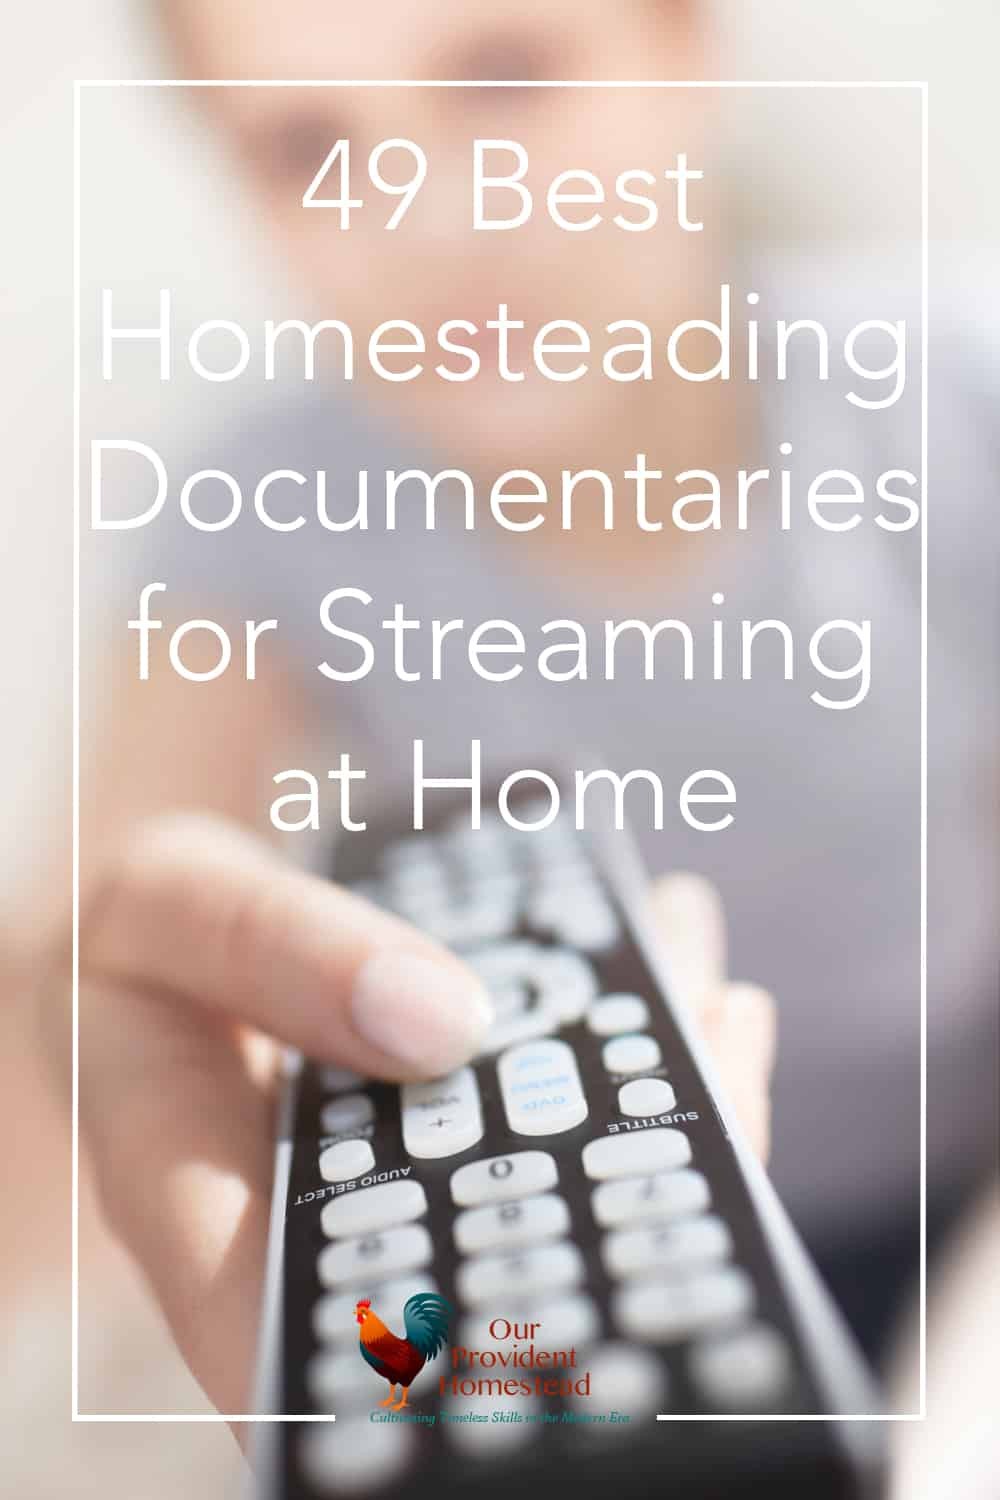 49 best homesteading documentaries for streaming at home